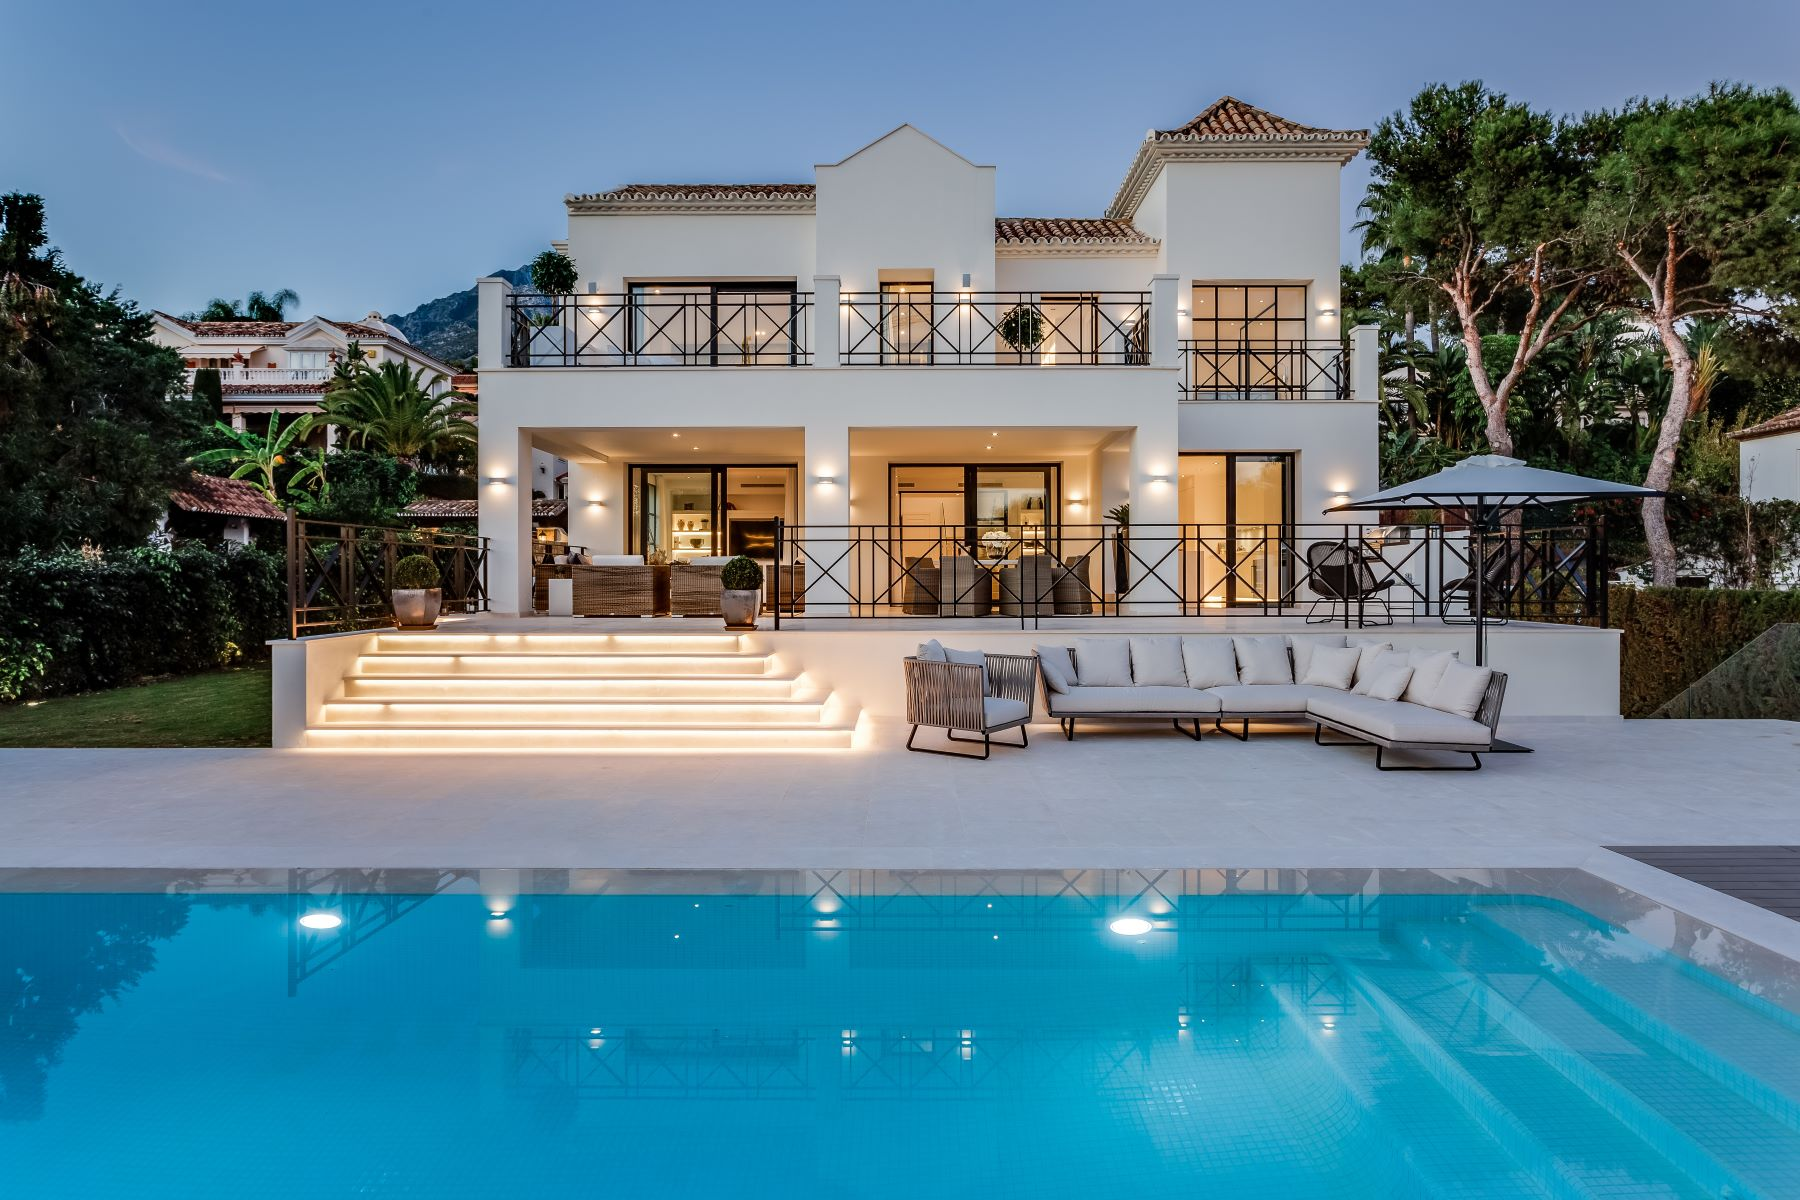 Single Family Homes for Sale at Exclusive Contemporary Villa in Sierra Blanca Marbella, Andalucia Spain